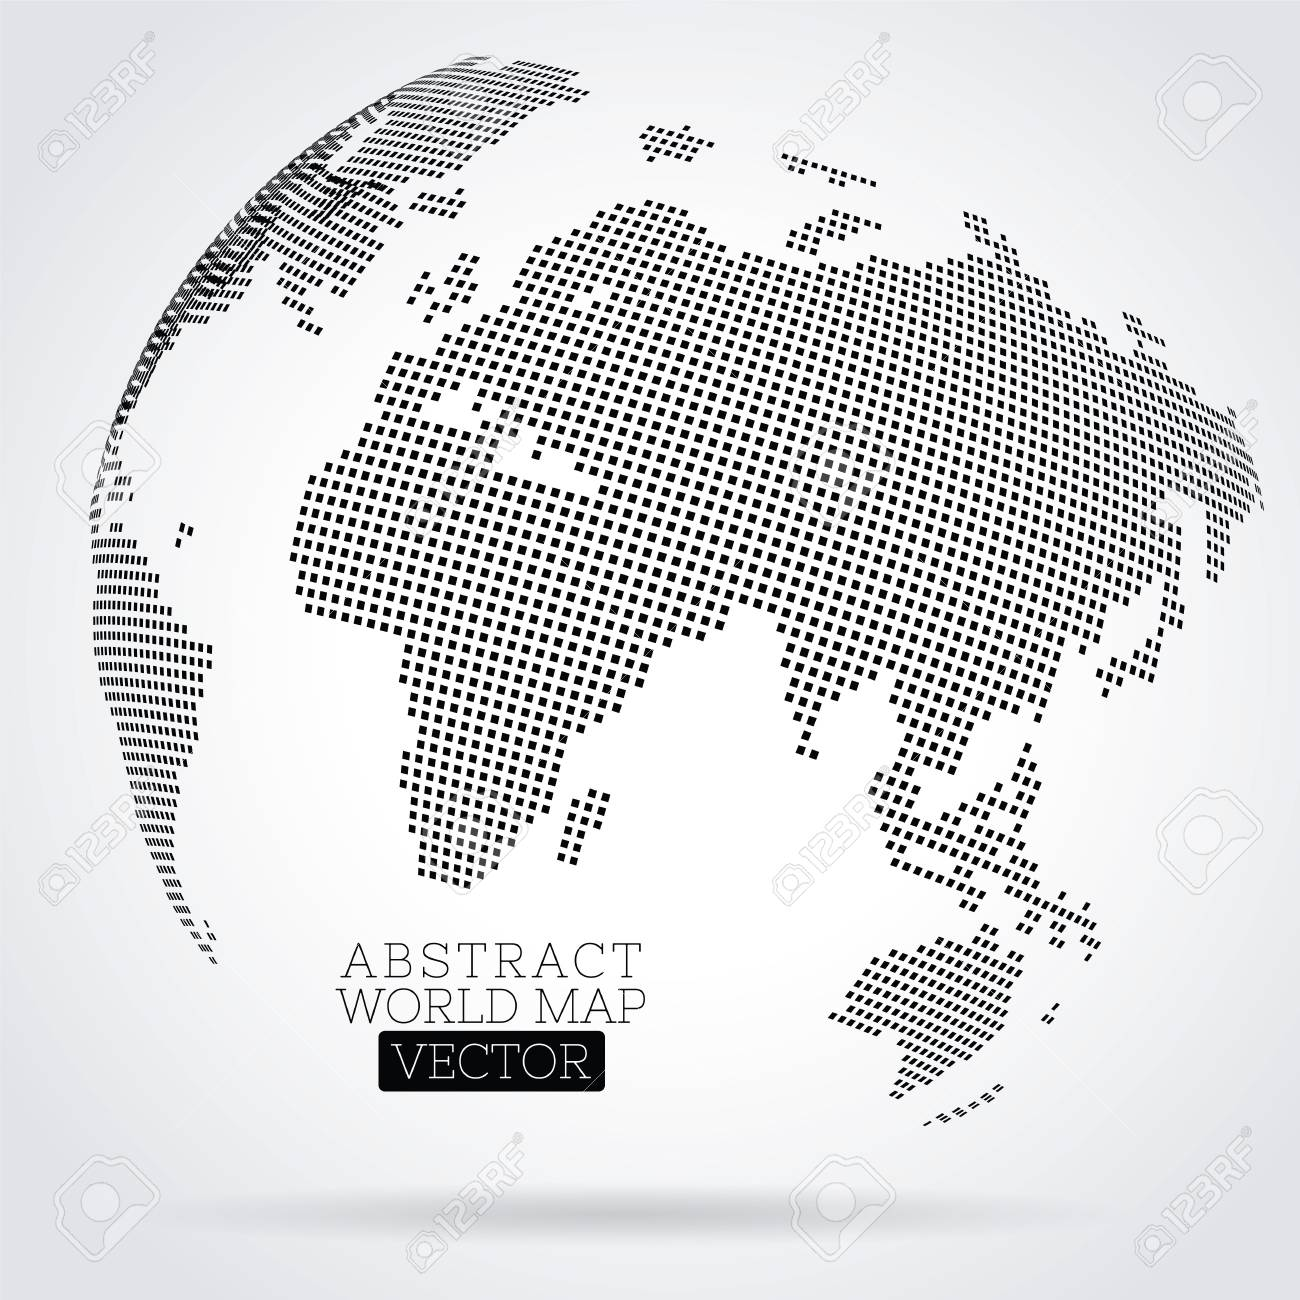 Pixel world map made from small squares royalty free cliparts pixel world map made from small squares stock vector 91822205 gumiabroncs Image collections